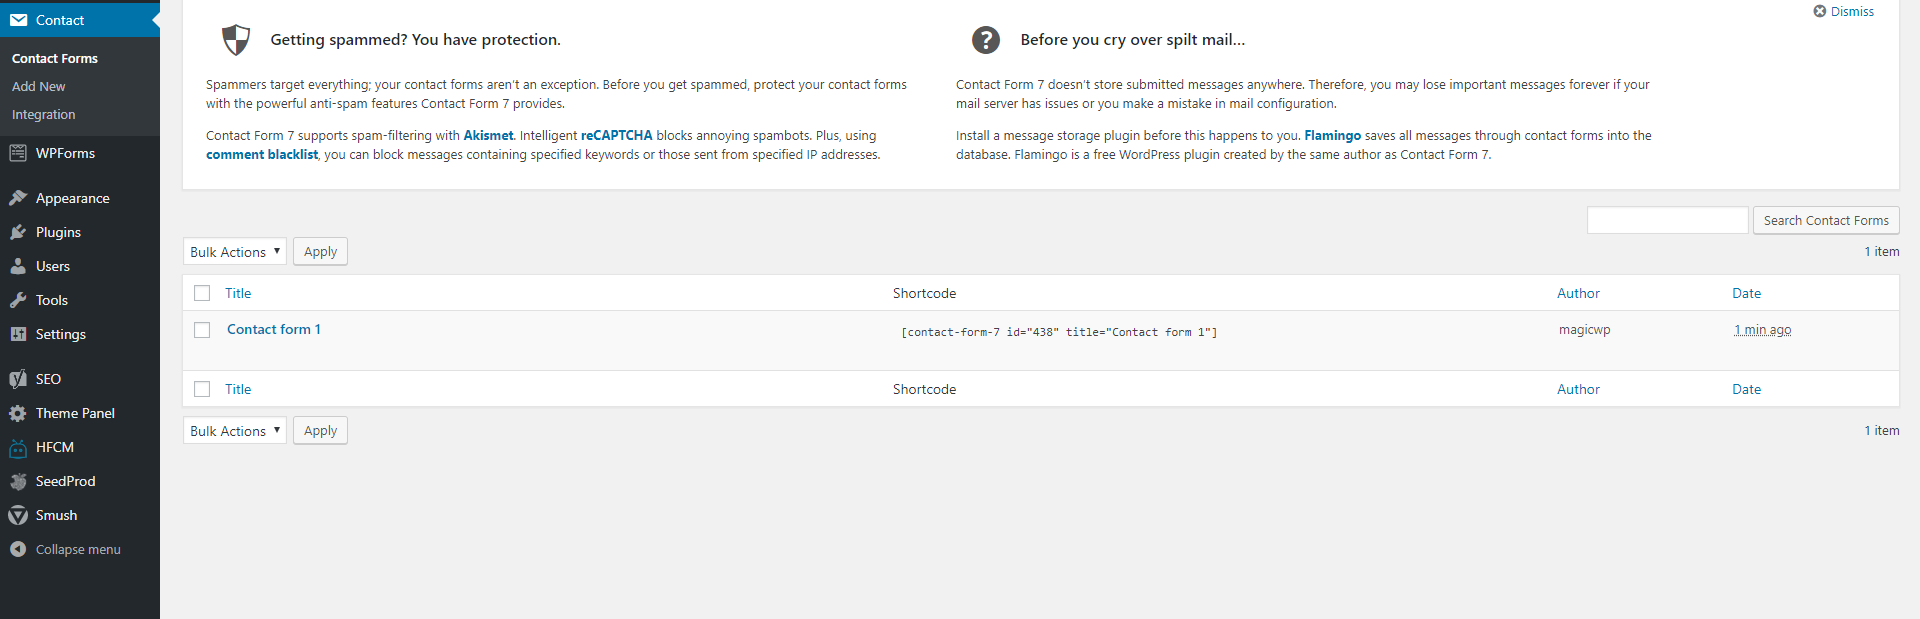 How to add a contact form to the website